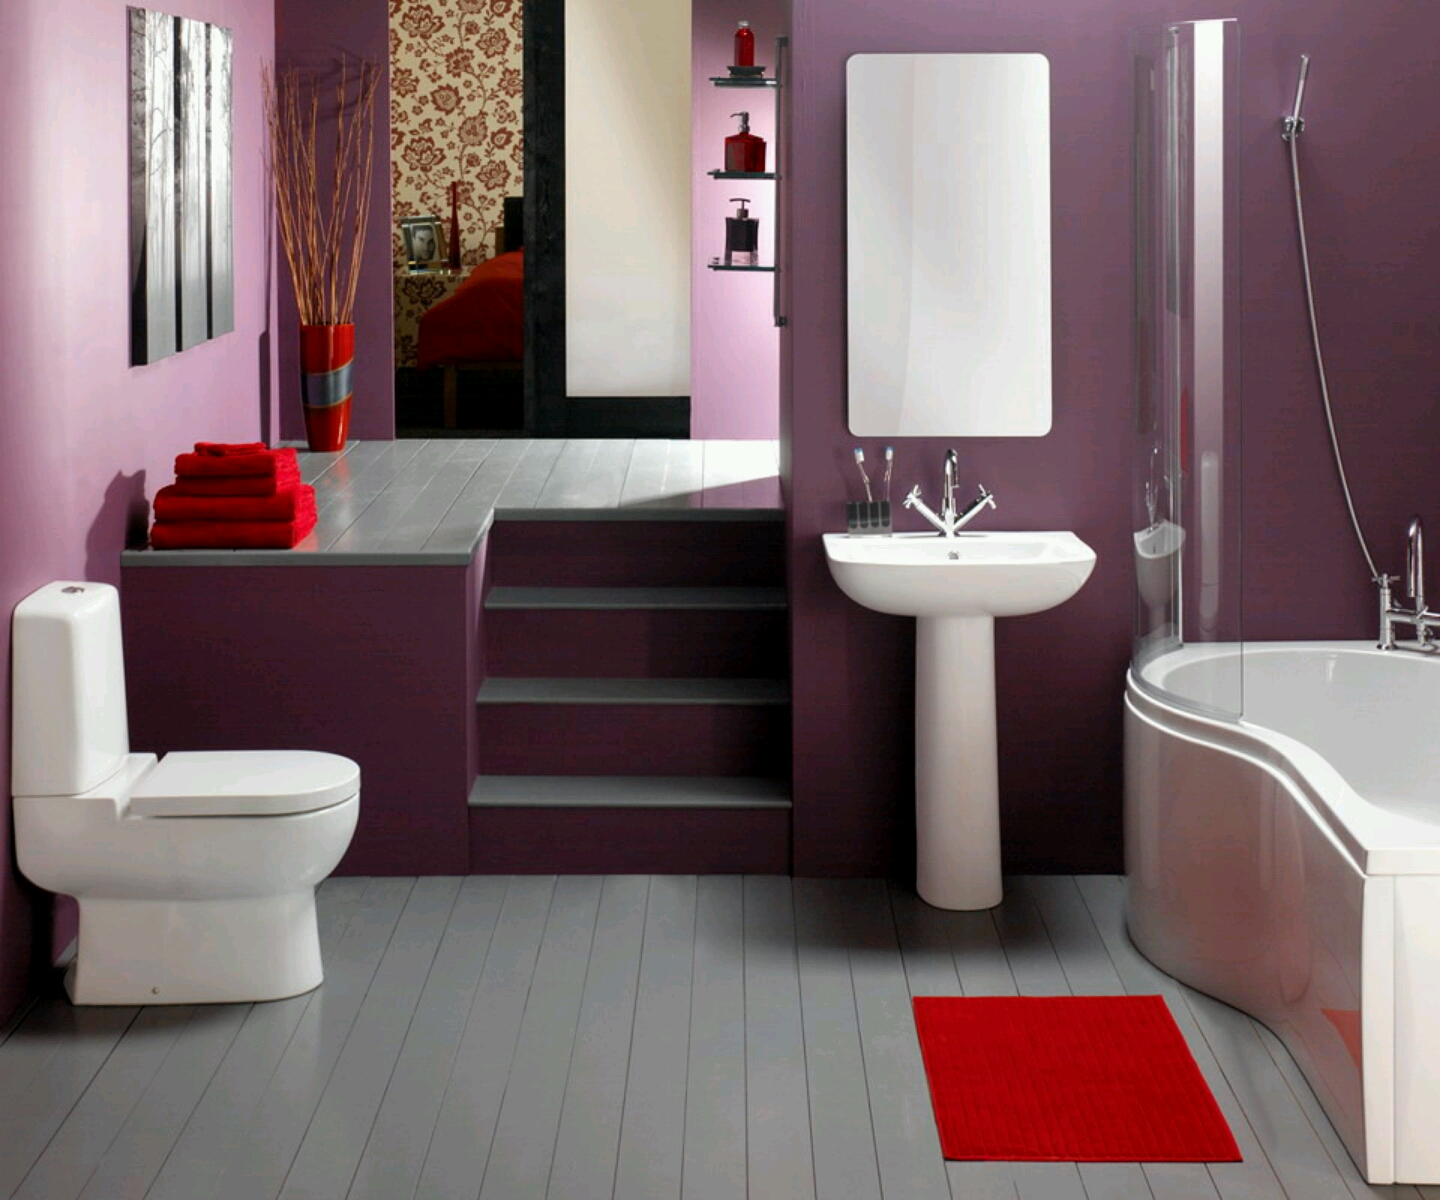 New home designs latest luxury modern bathrooms designs for House bathroom design